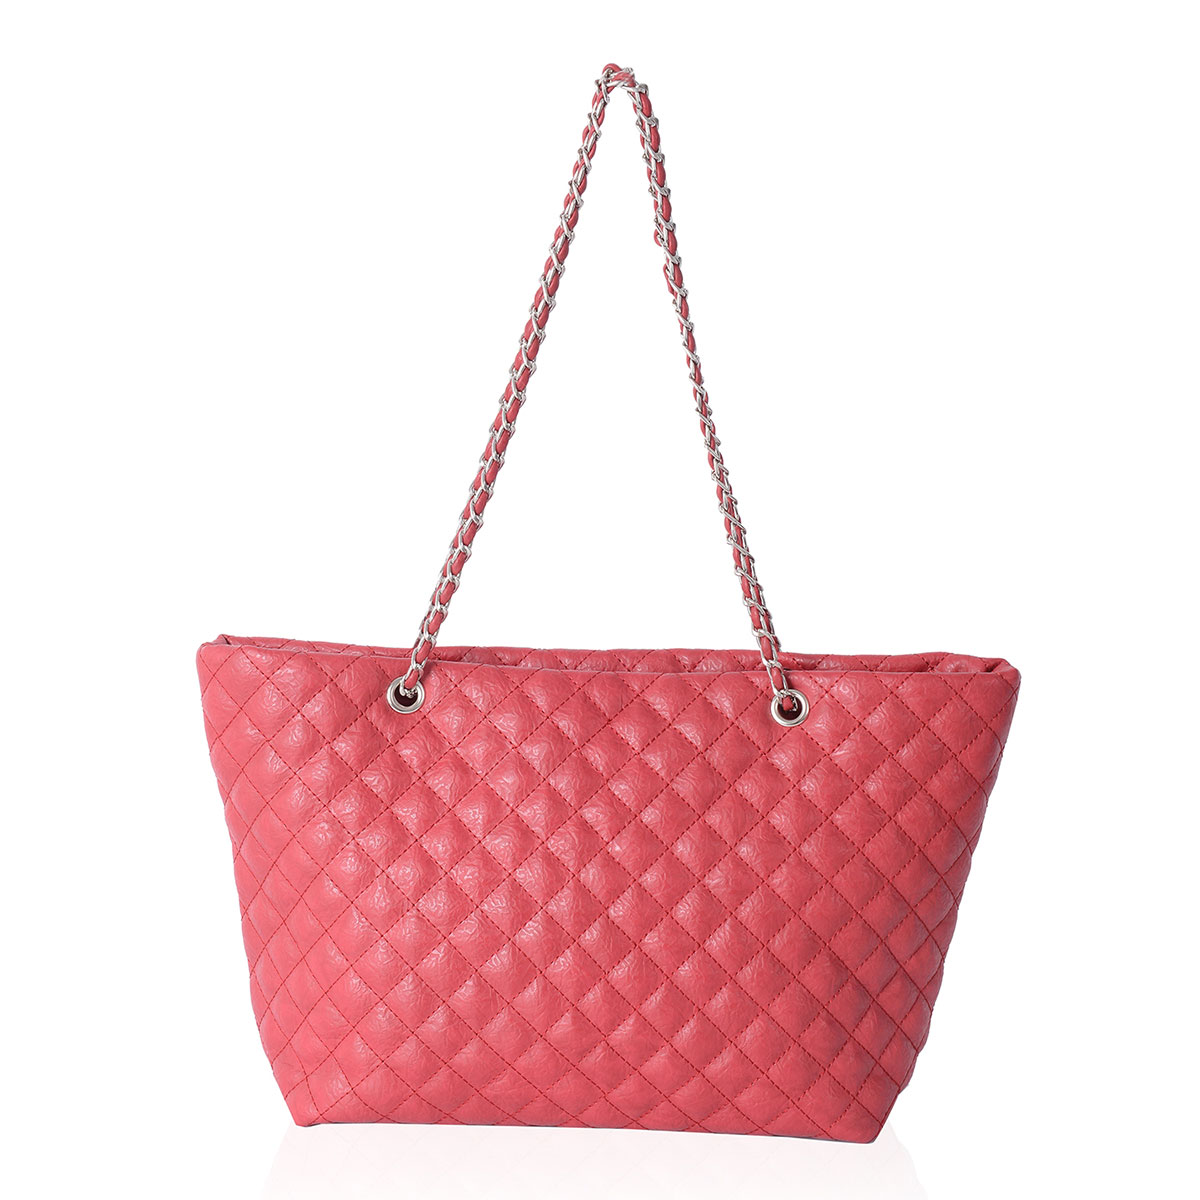 d0c921a880a514 Red Quilted Faux Leather Shoulder Bag With Chain Strap 16x5x9 In. Handbags.  Handbags Fashion Chanel